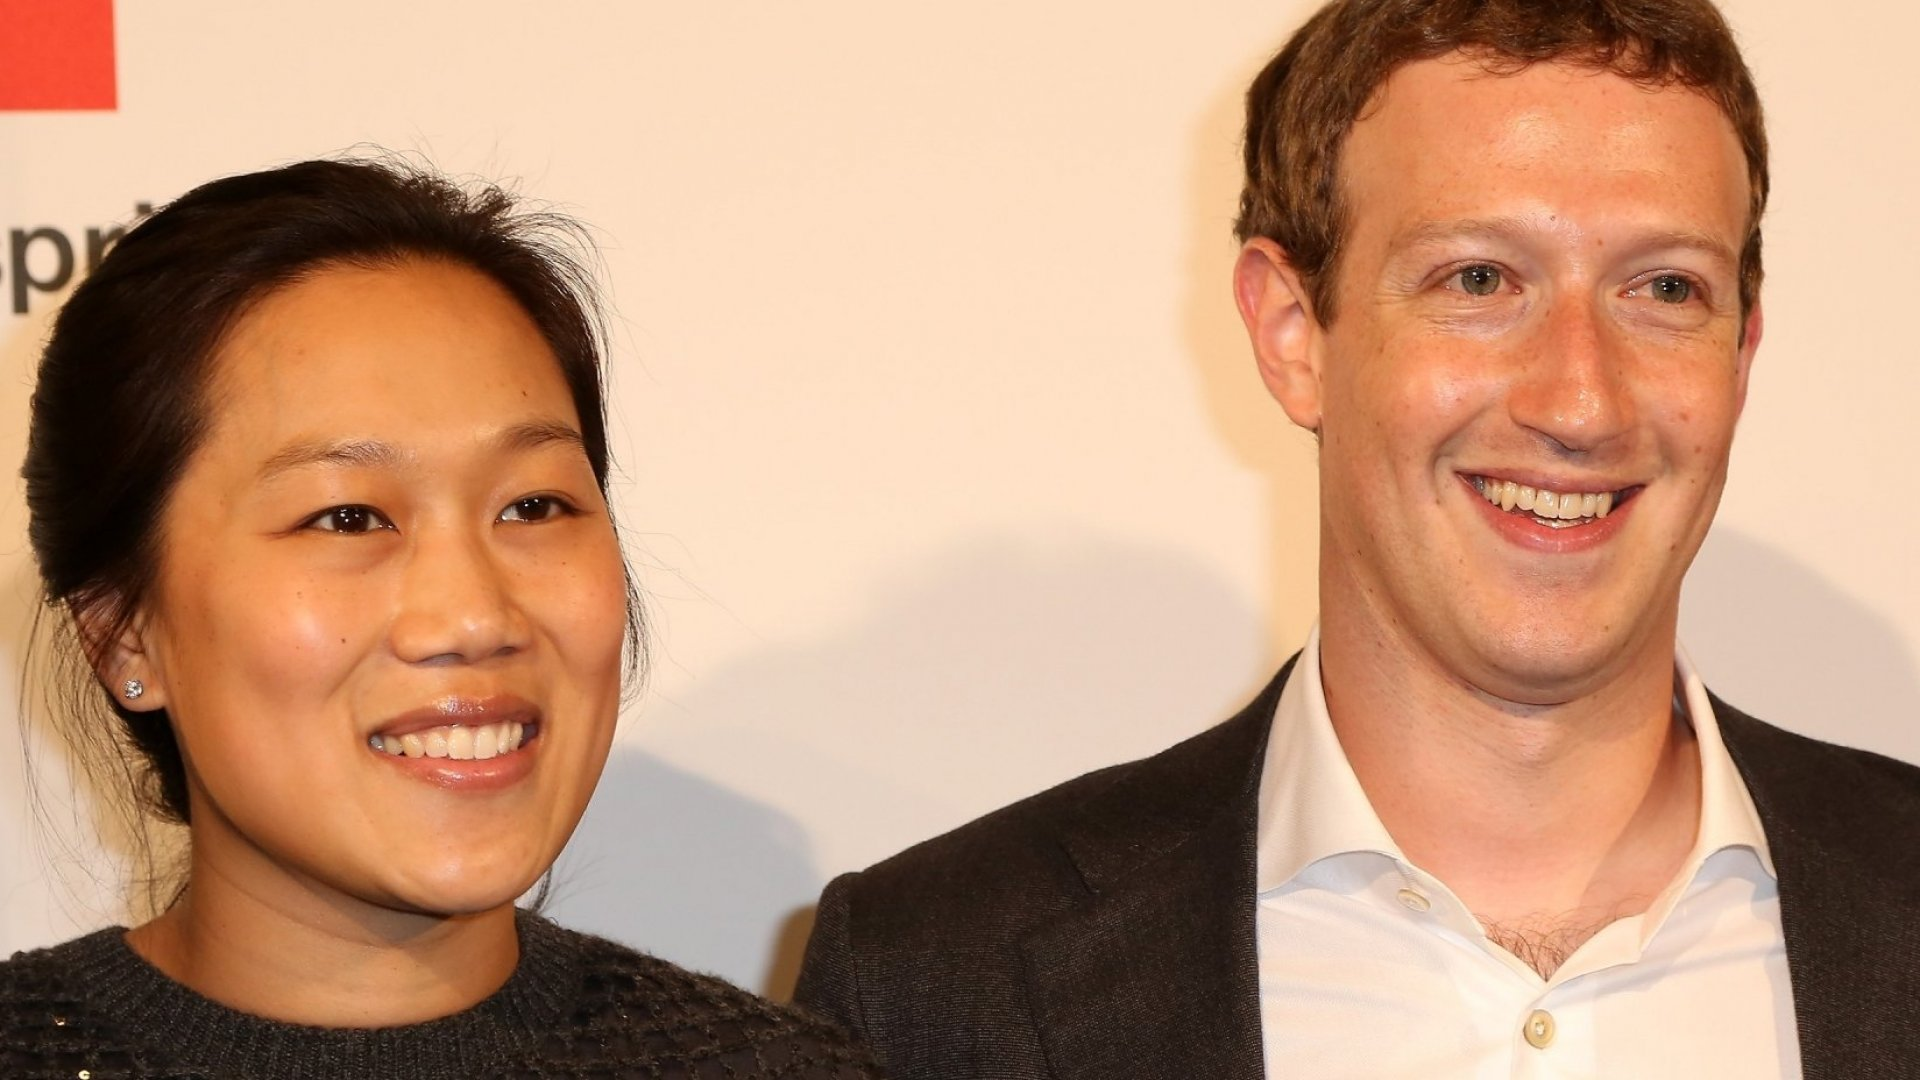 Mark Zuckerberg and wife Priscilla Chan need funds for their philanthropic plans.